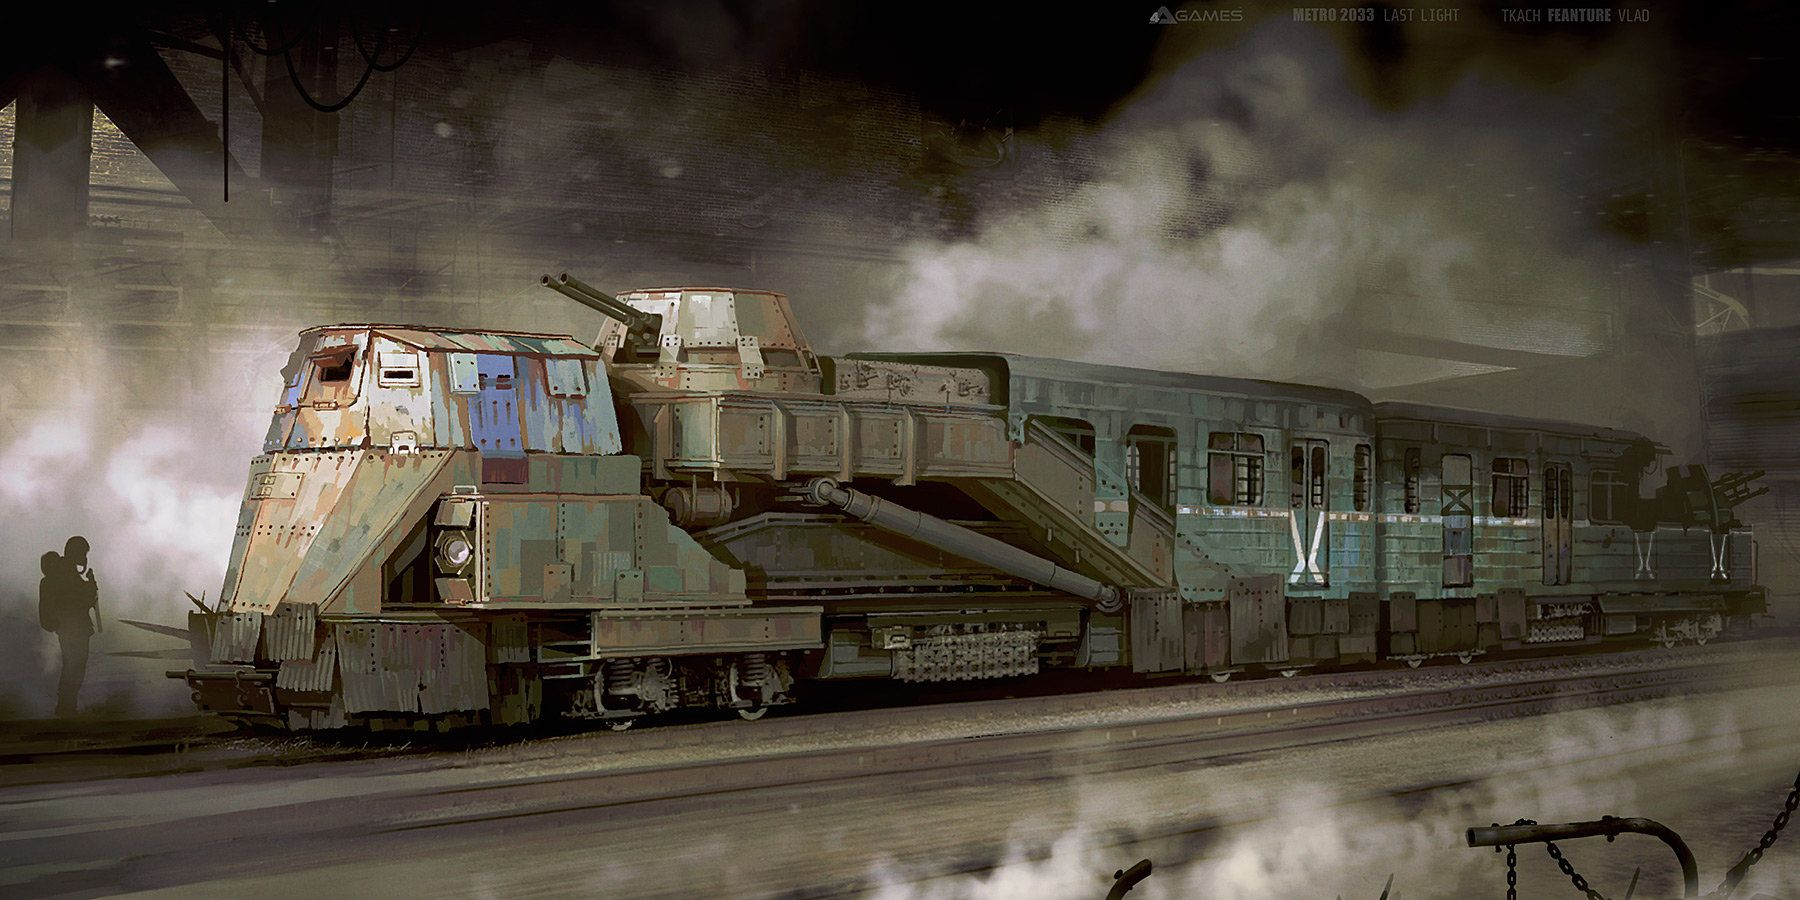 Armoured train Concept art for Metro 2033 Last Light by